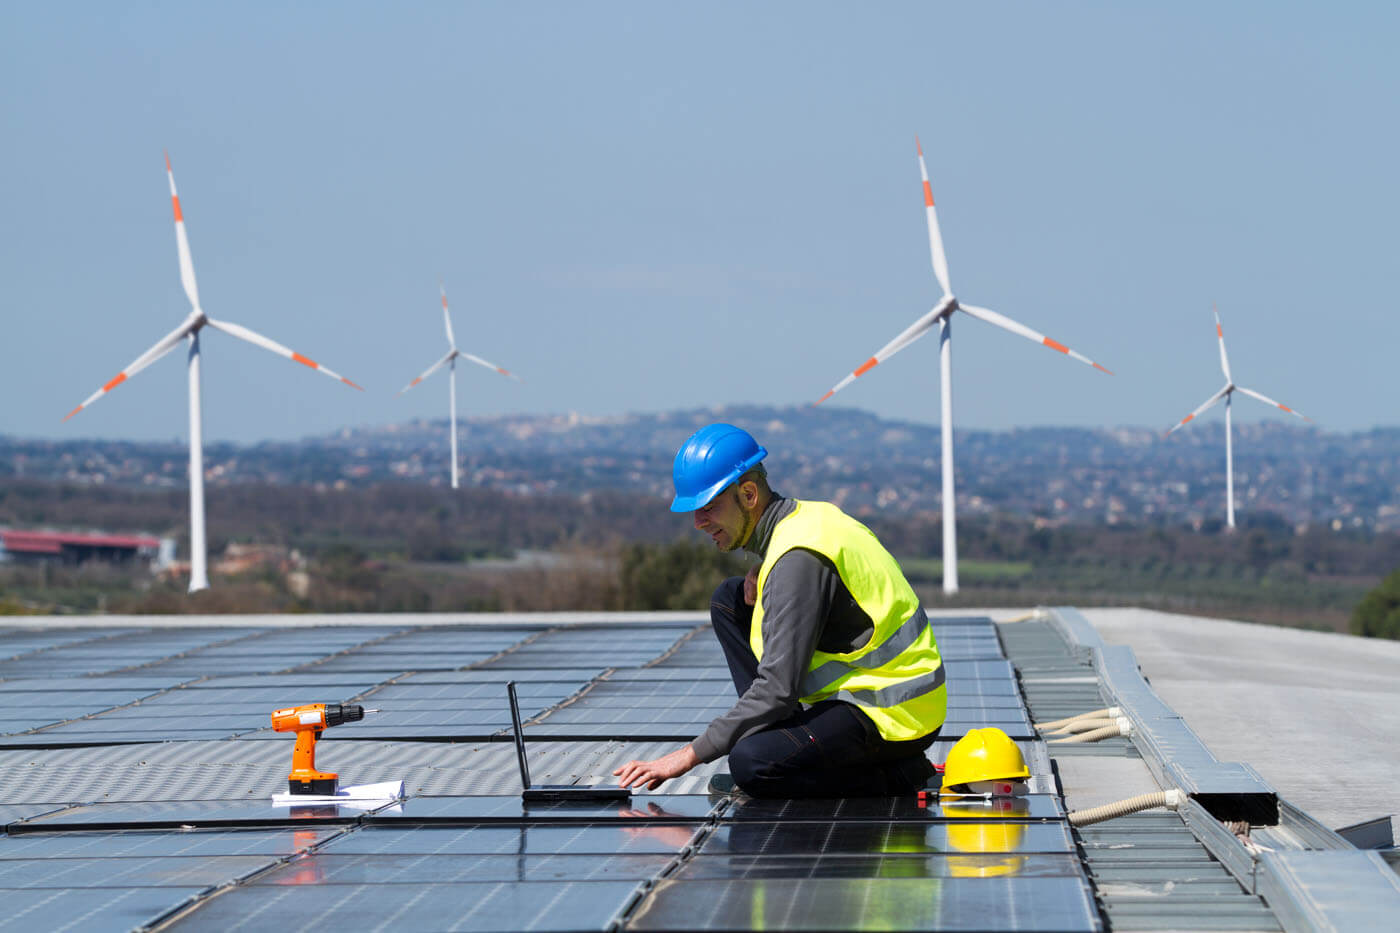 An engineer works on solar panels.